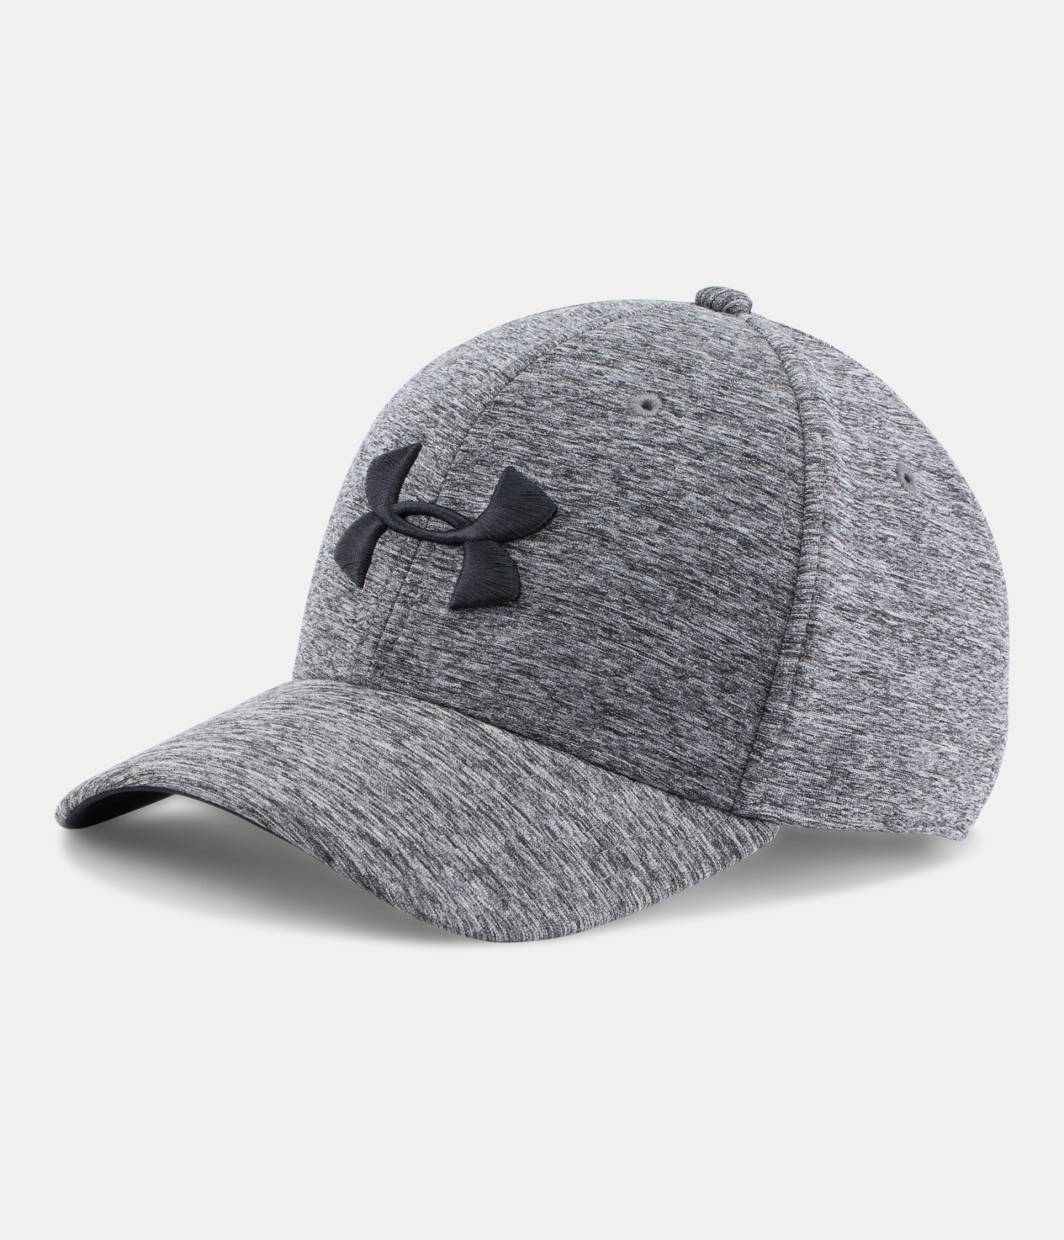 Under Armour Outlet. Fashion, Clothing and Accessories. Menu and widgets. but there are also a number of outlet stores that drastically reduce clothing brand names. The quality of the goods does not go down, only the price, so the same merchandise offered in high-priced shops is made far more affordable. Women's Under Armour Cold Gear.